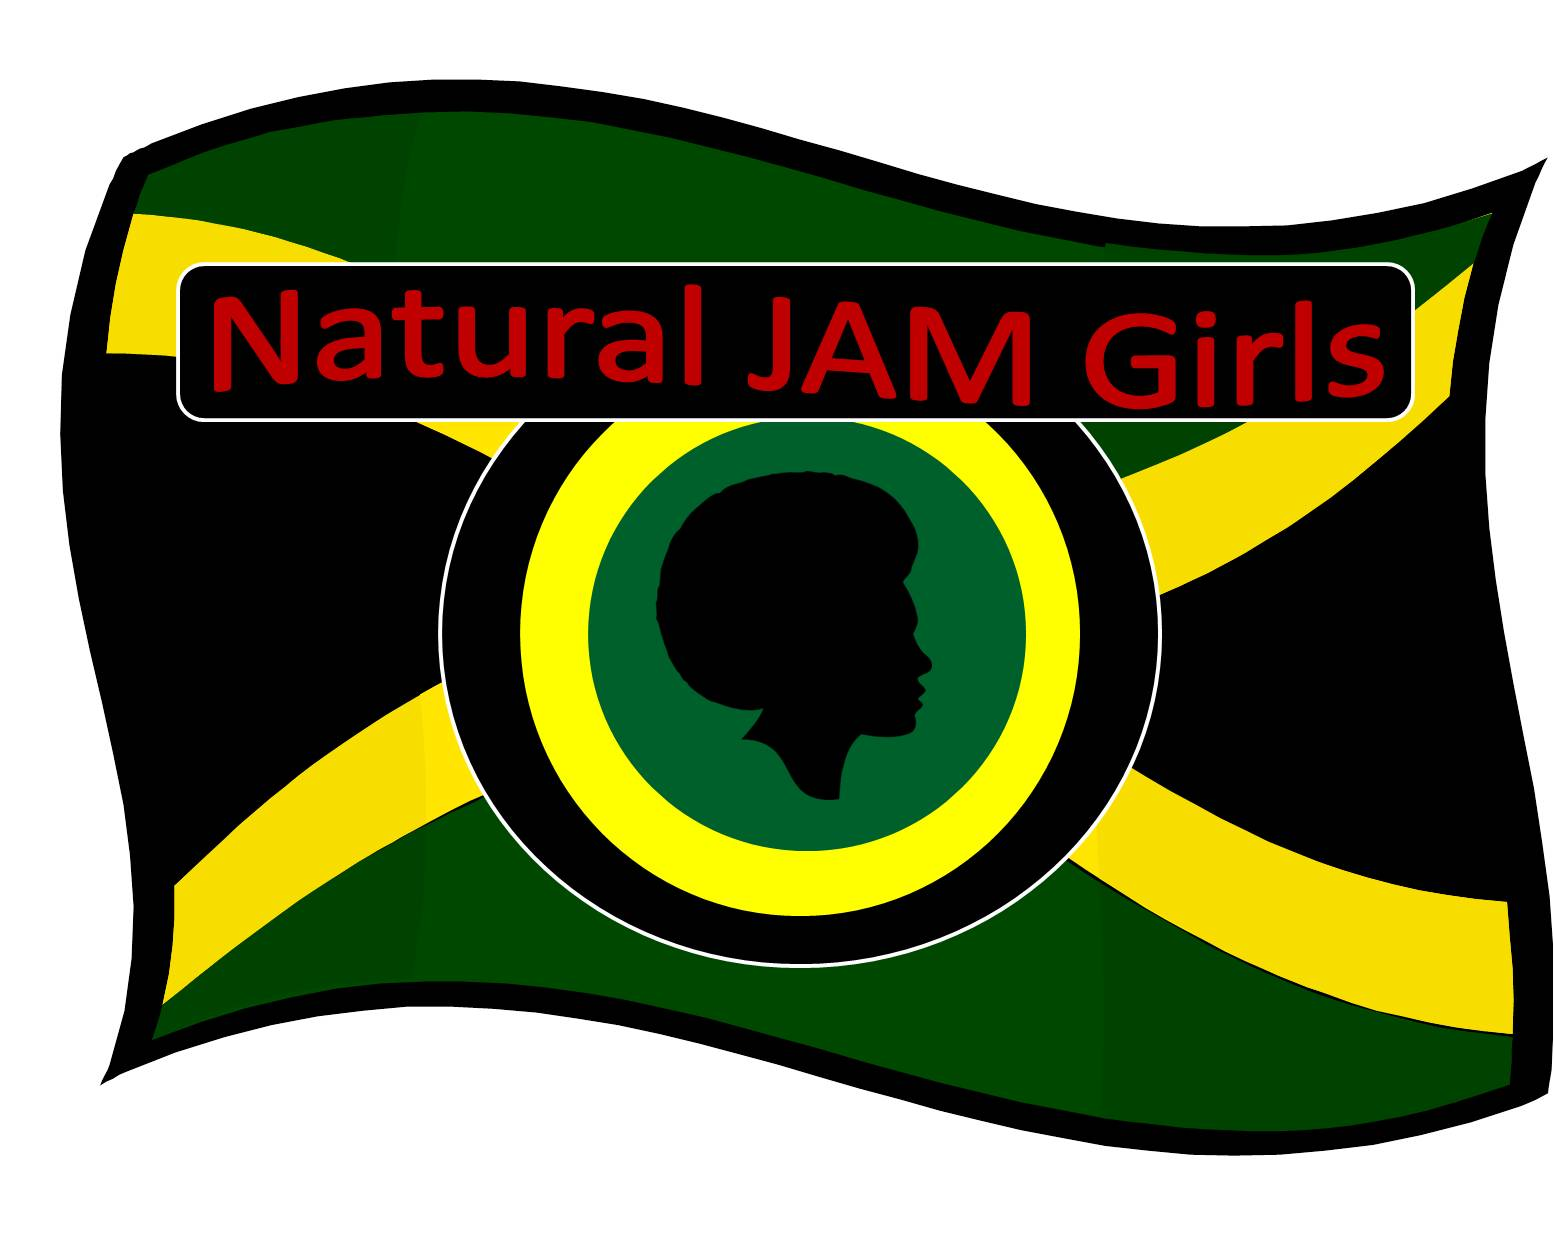 NaturalJAMGirls